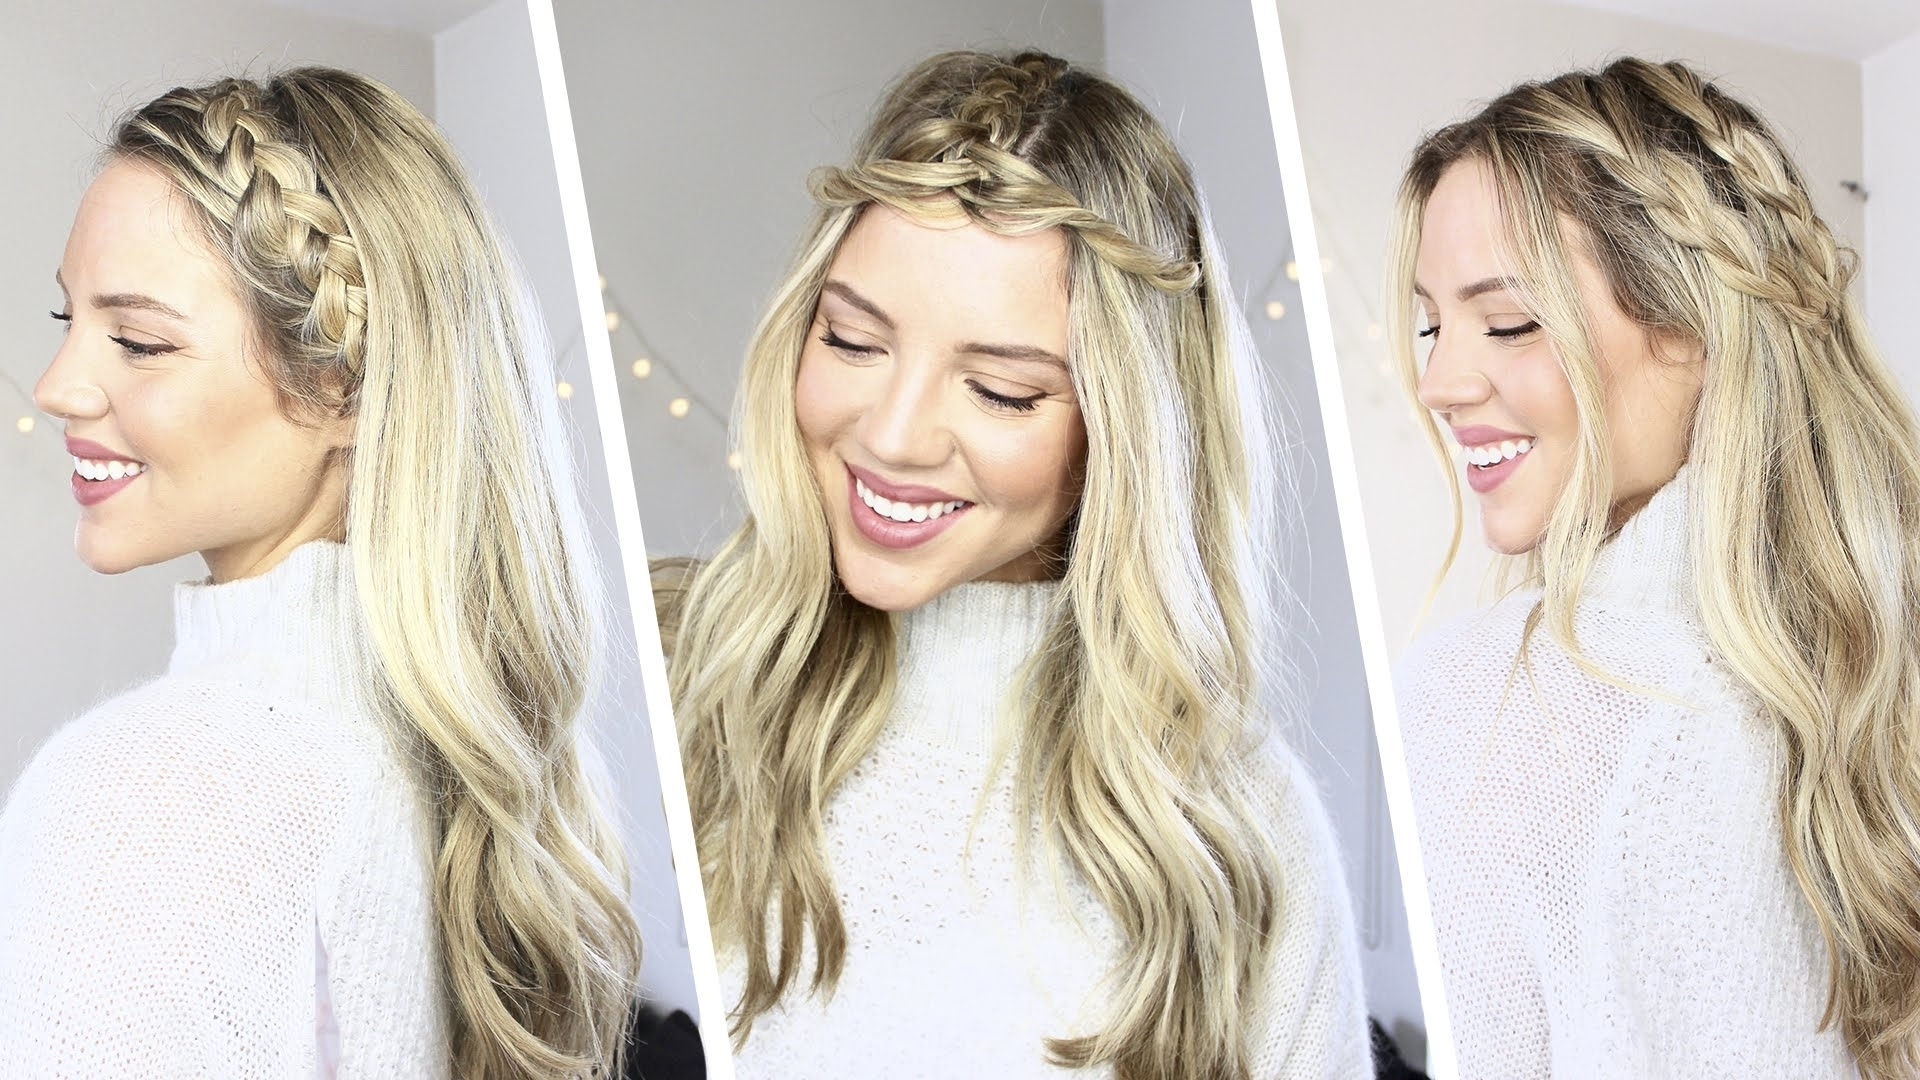 How To: 3 Easy Braided Hairstyles (View 4 of 15)